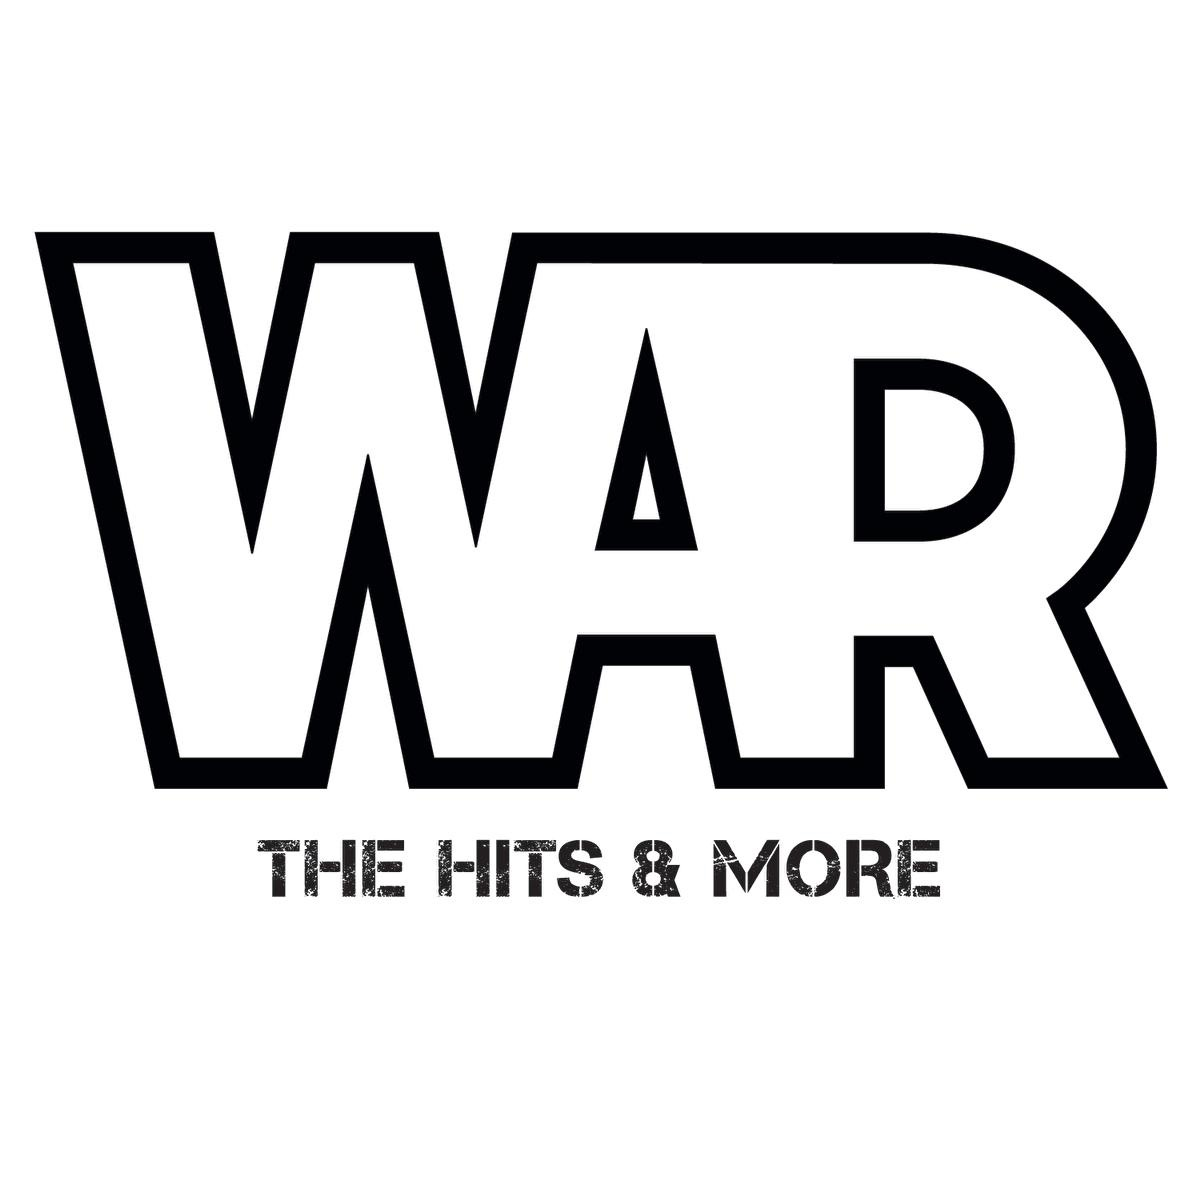 The Hits  More War CD cover